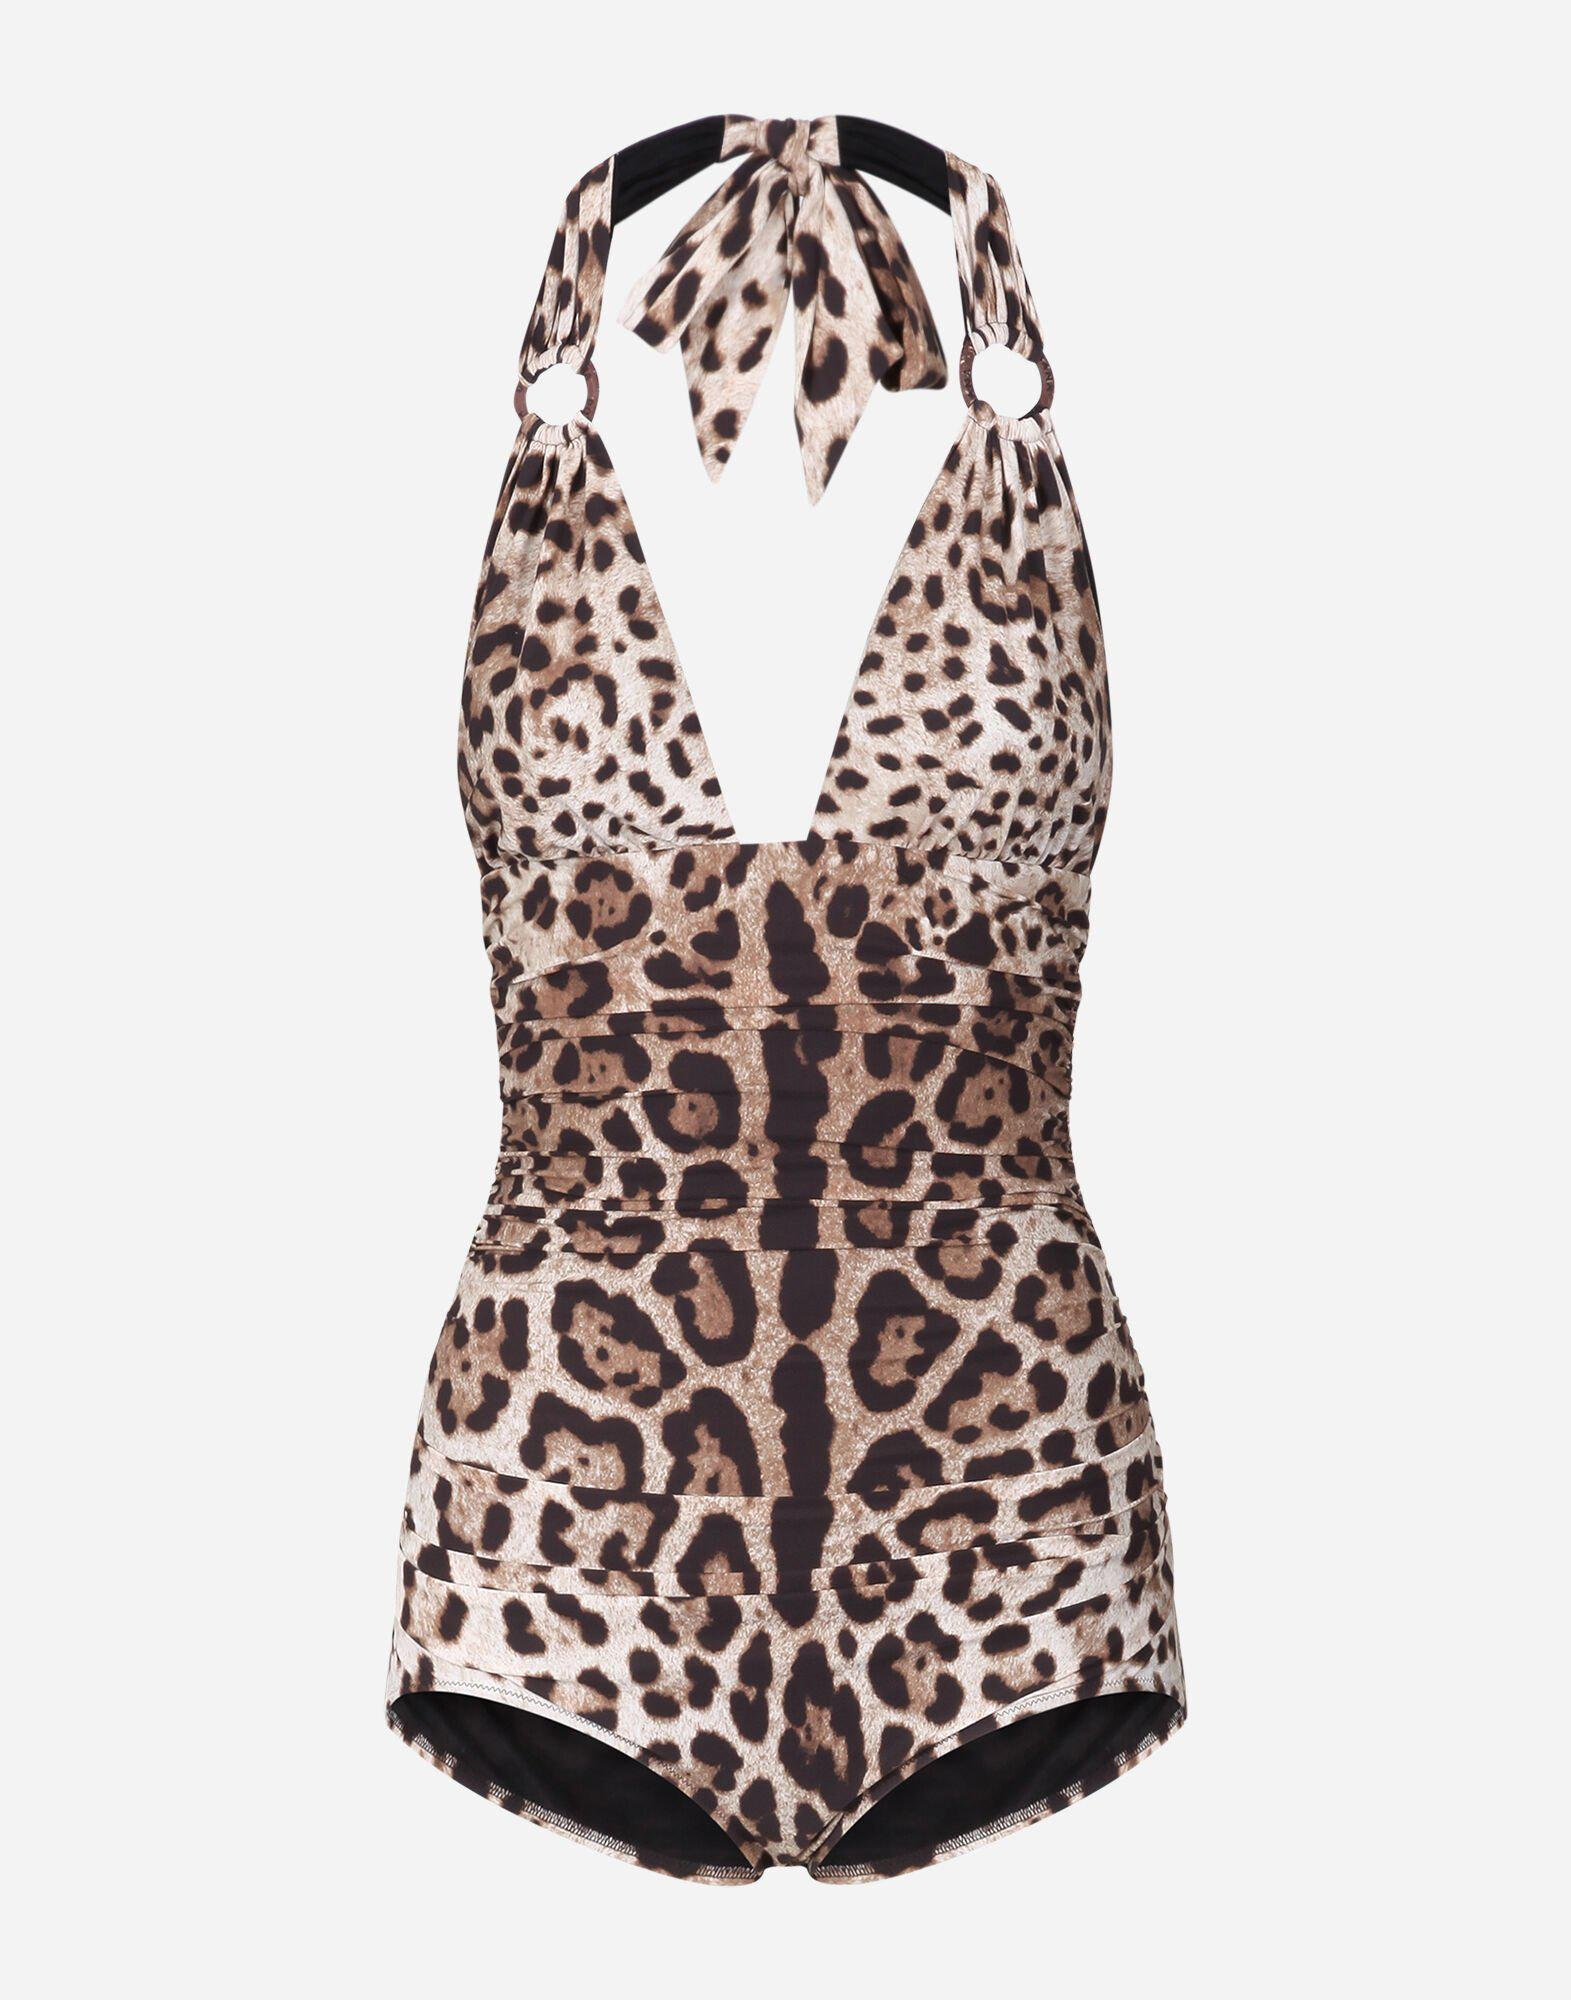 Leopard-print one-piece swimsuit with plunging neckline